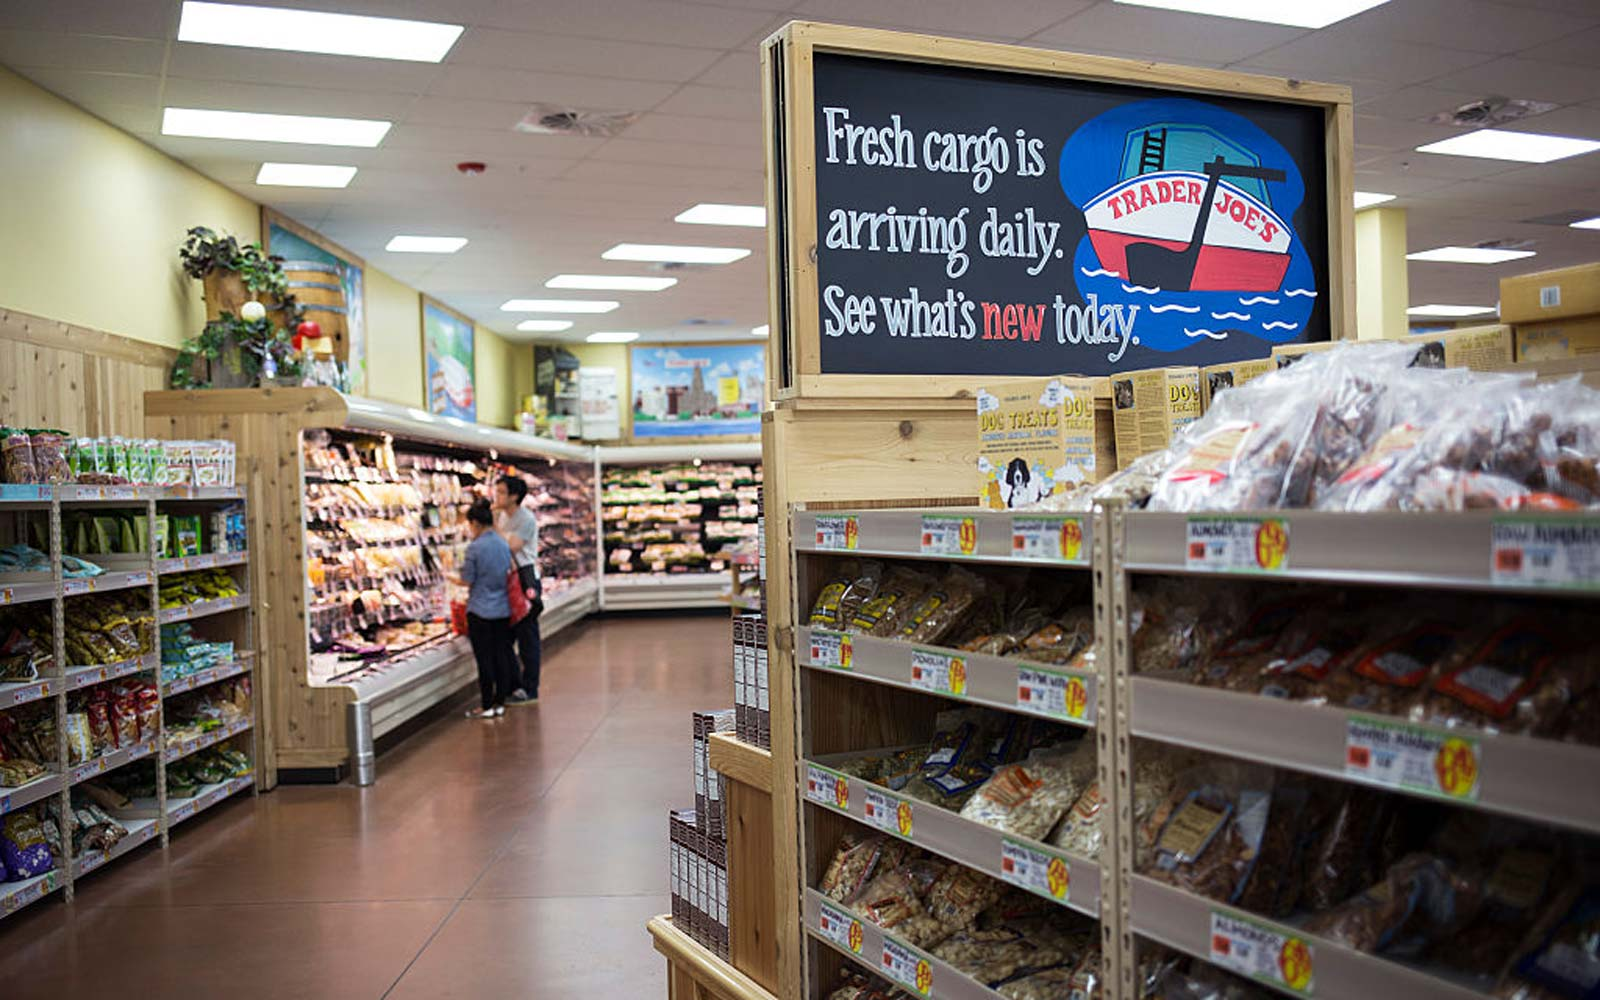 A Trader Joe's Employee Reveals Why the Store Is Often Out of Your Favorite Product